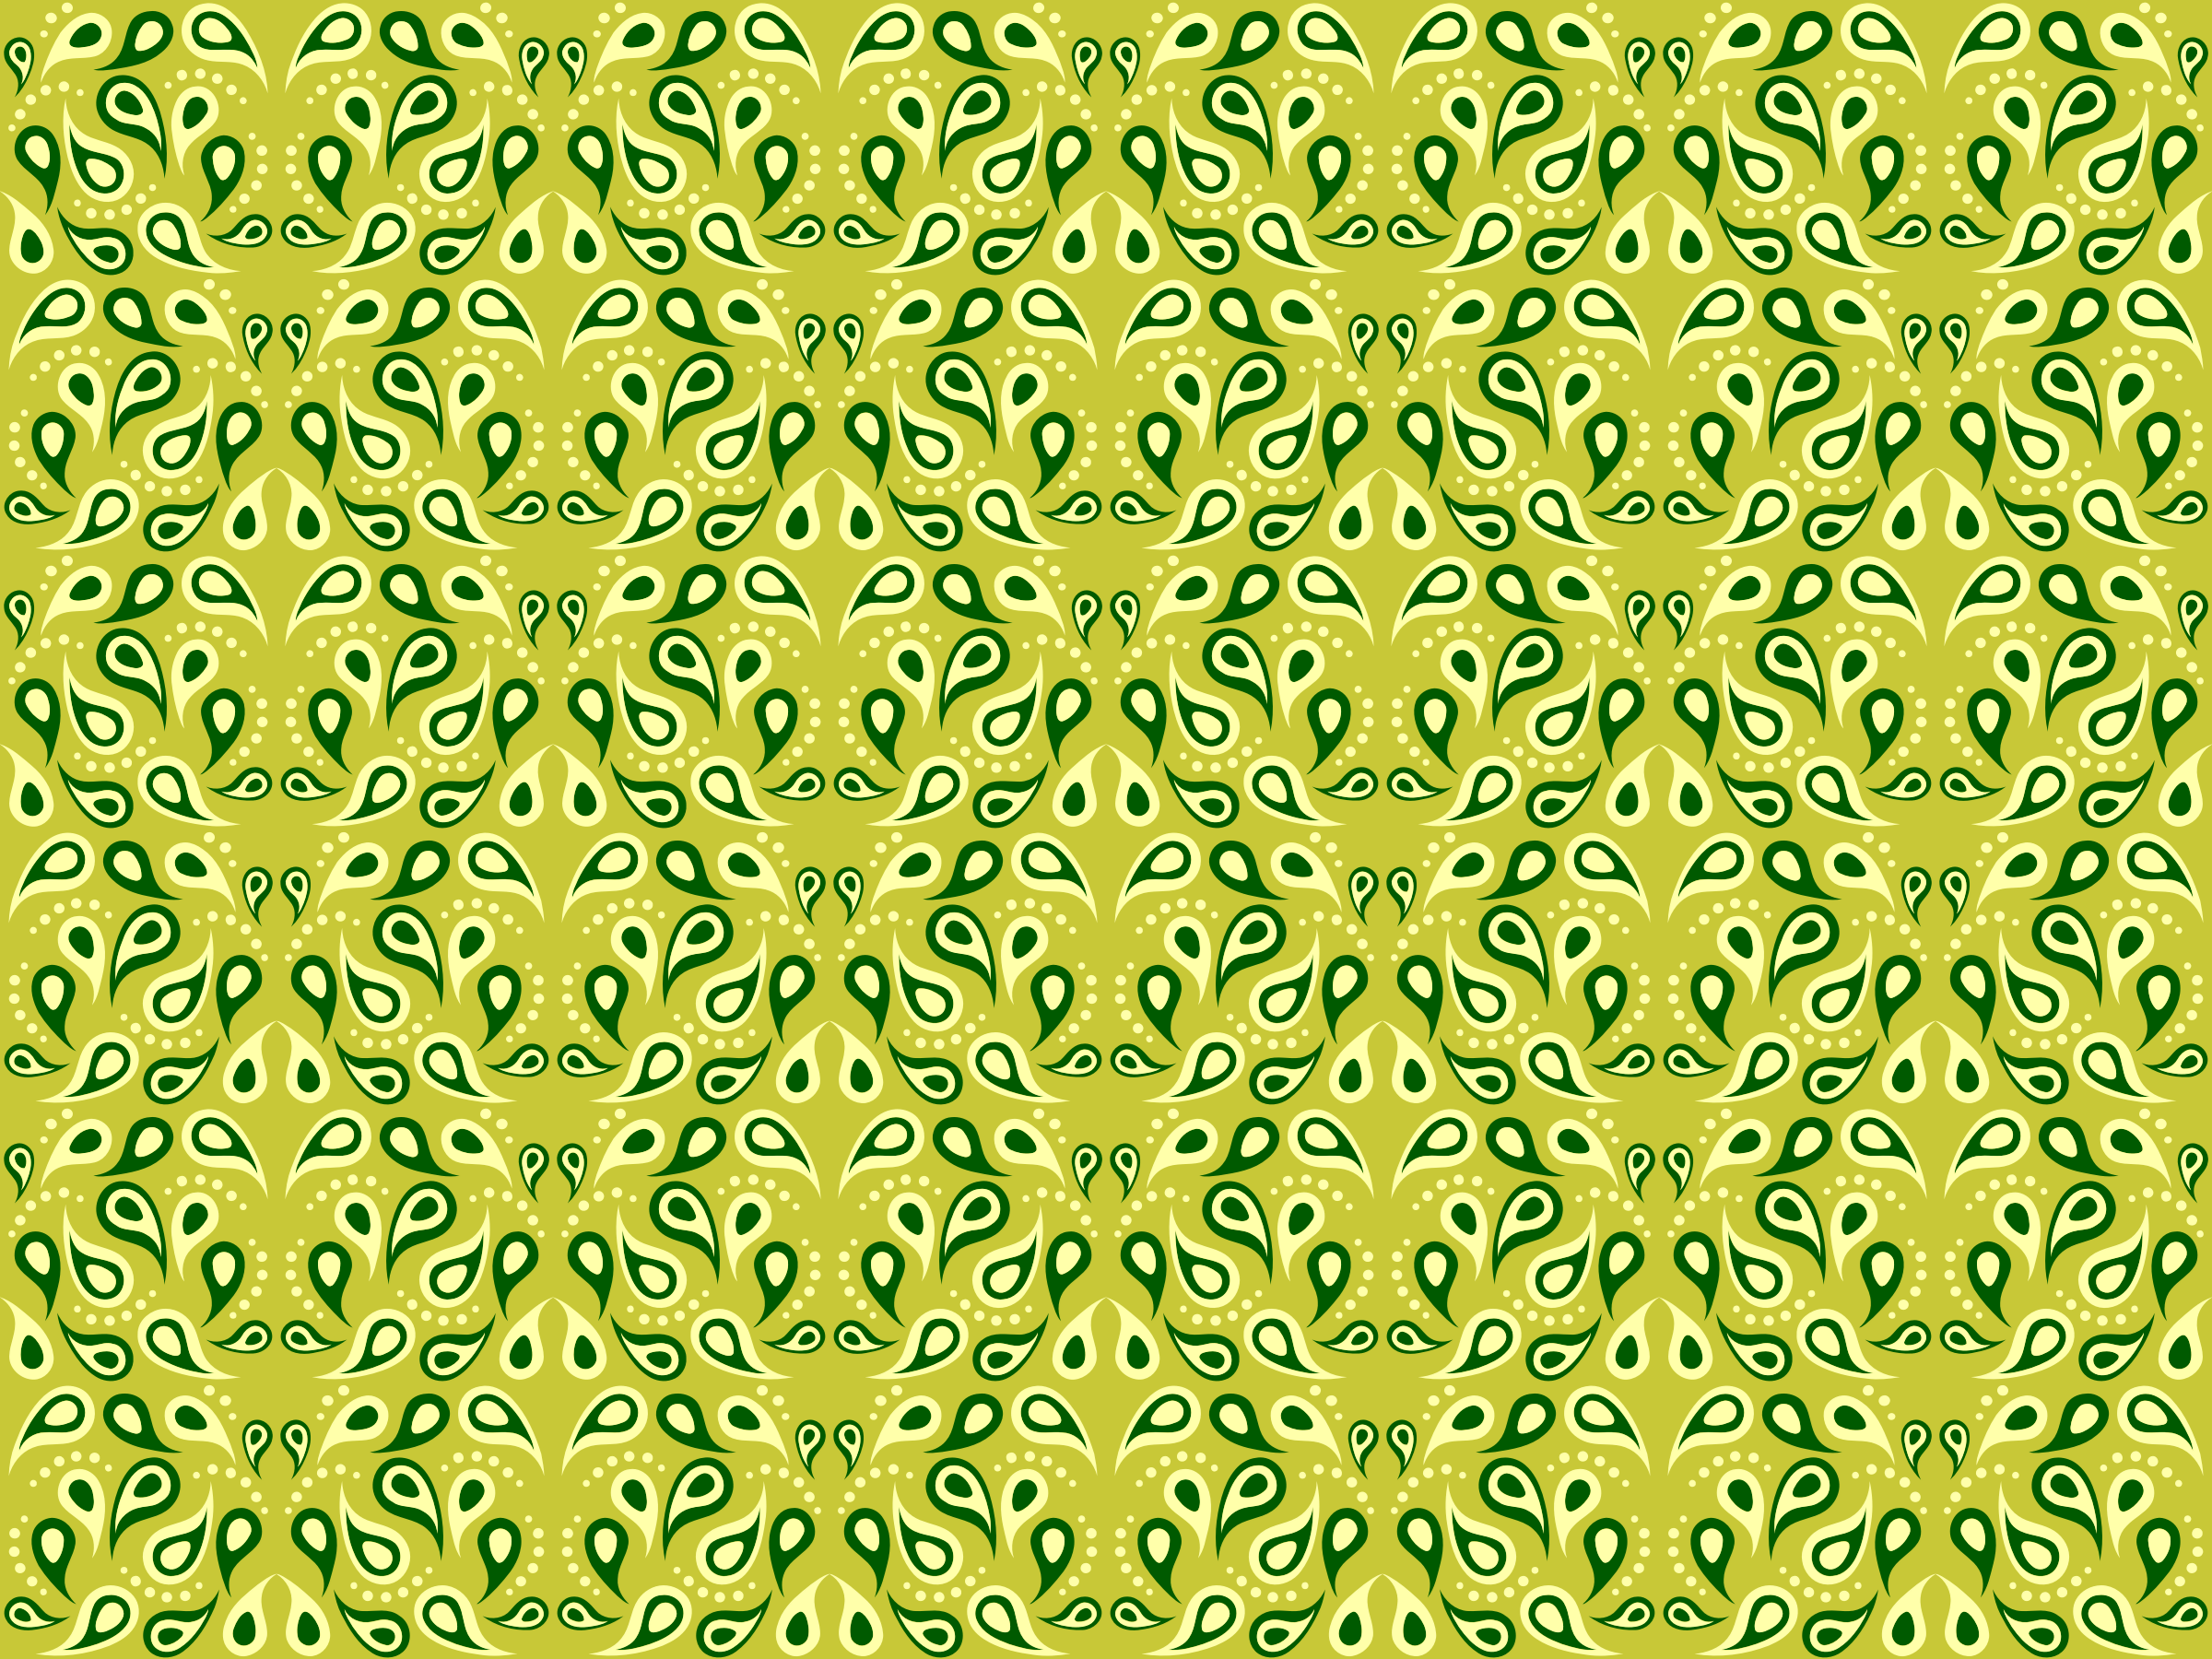 Background pattern 337 (colour 4) by Firkin